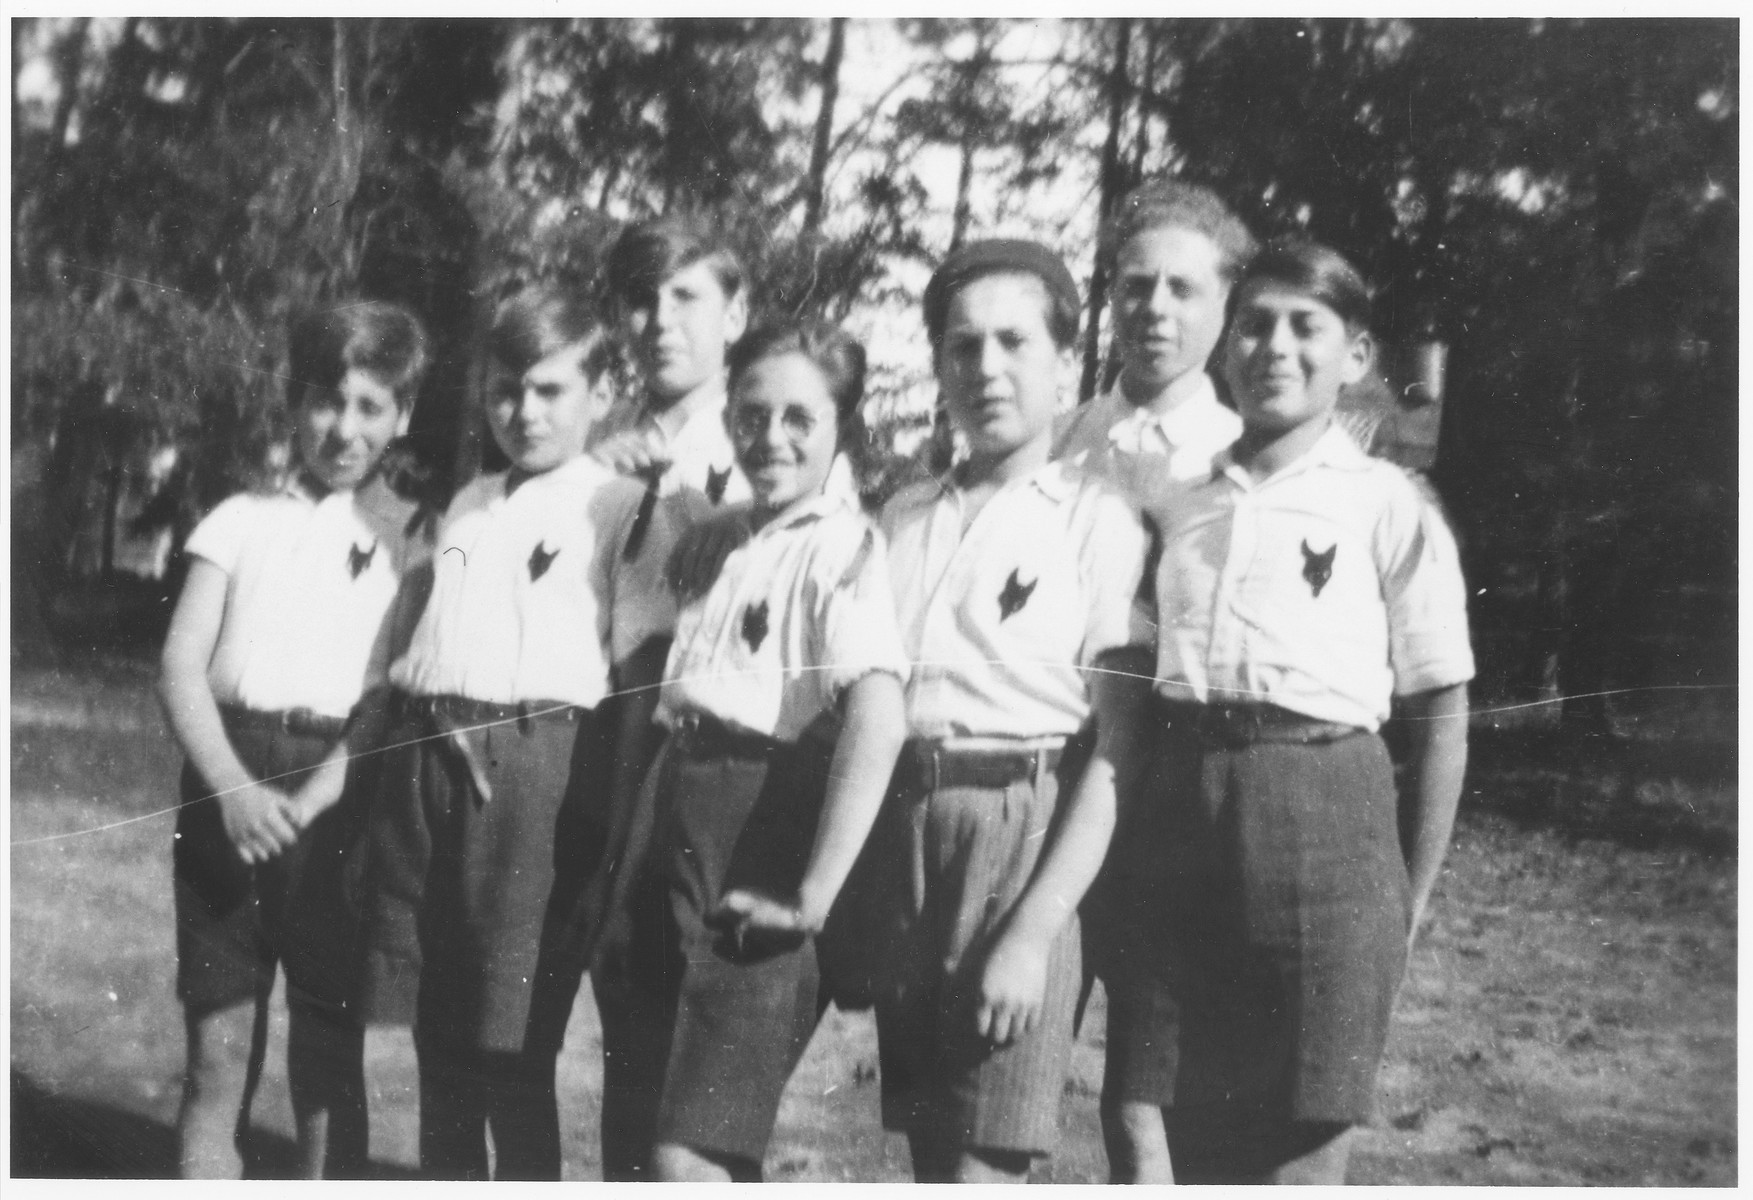 Group portrait of Jewish boy scouts in the Montintin children's home wearing shirts with wolf emblems.